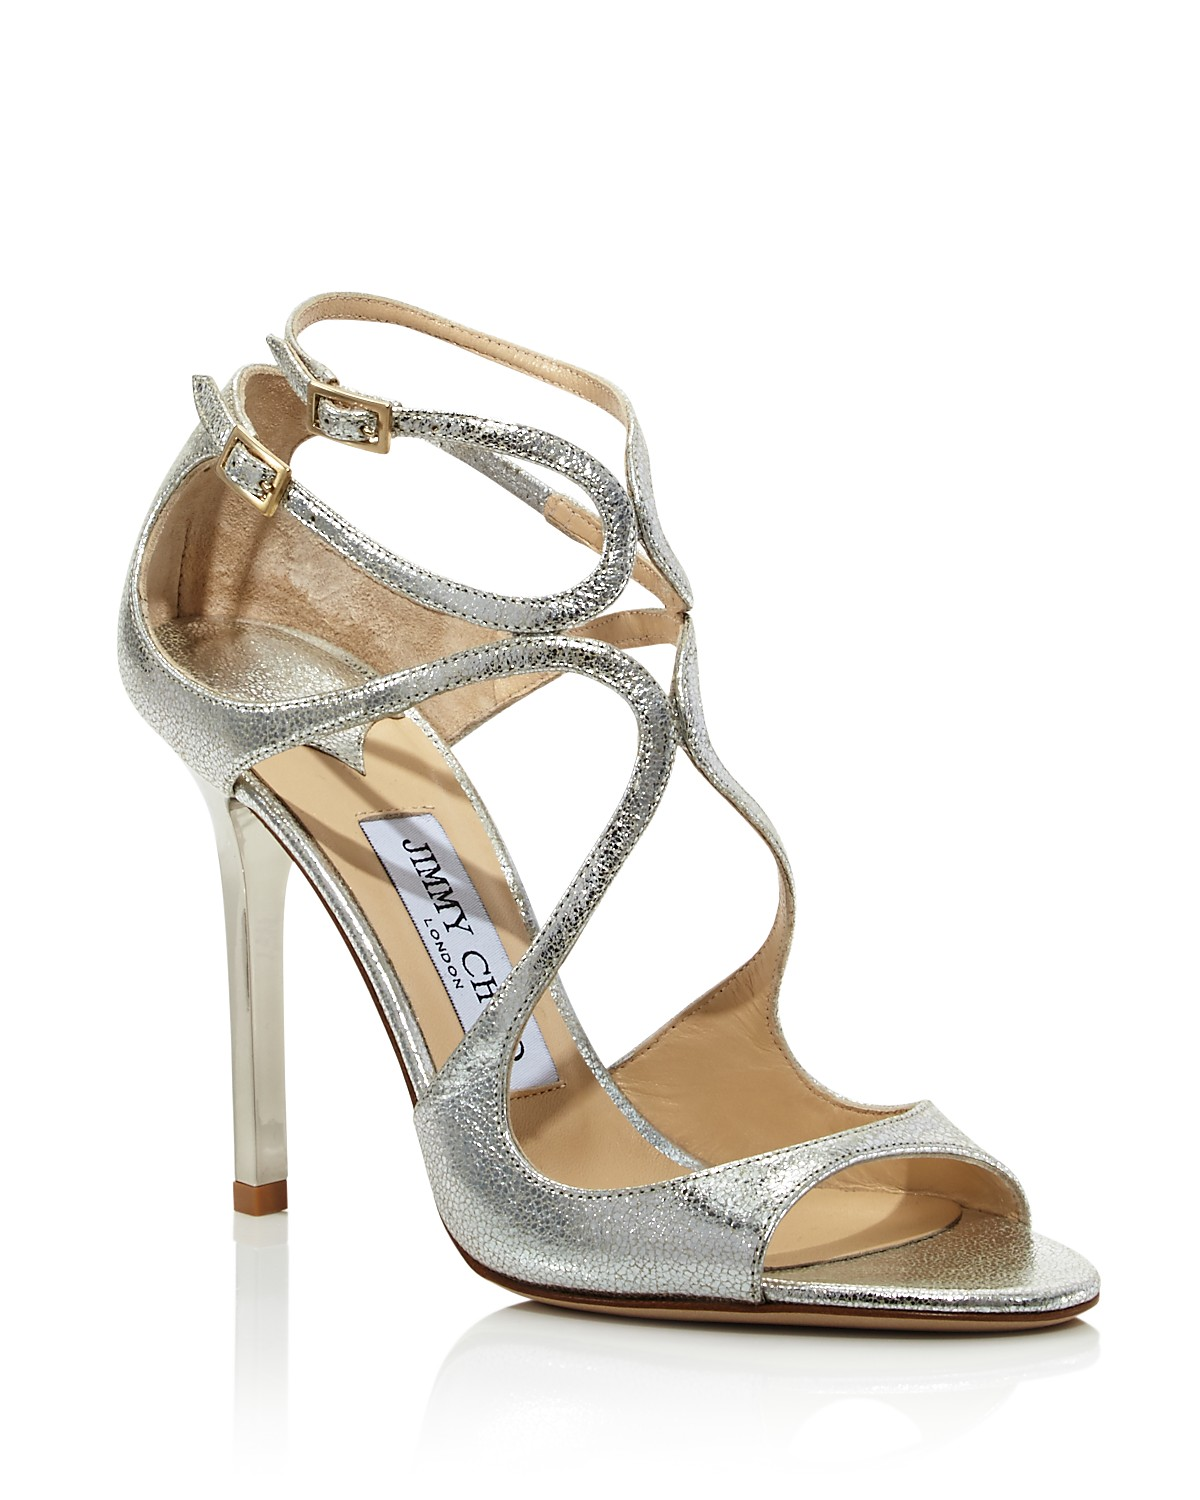 Jimmy choo Women's Lang 100 Crackled Metallic Leather High-Heel Sandals ULty8xXe